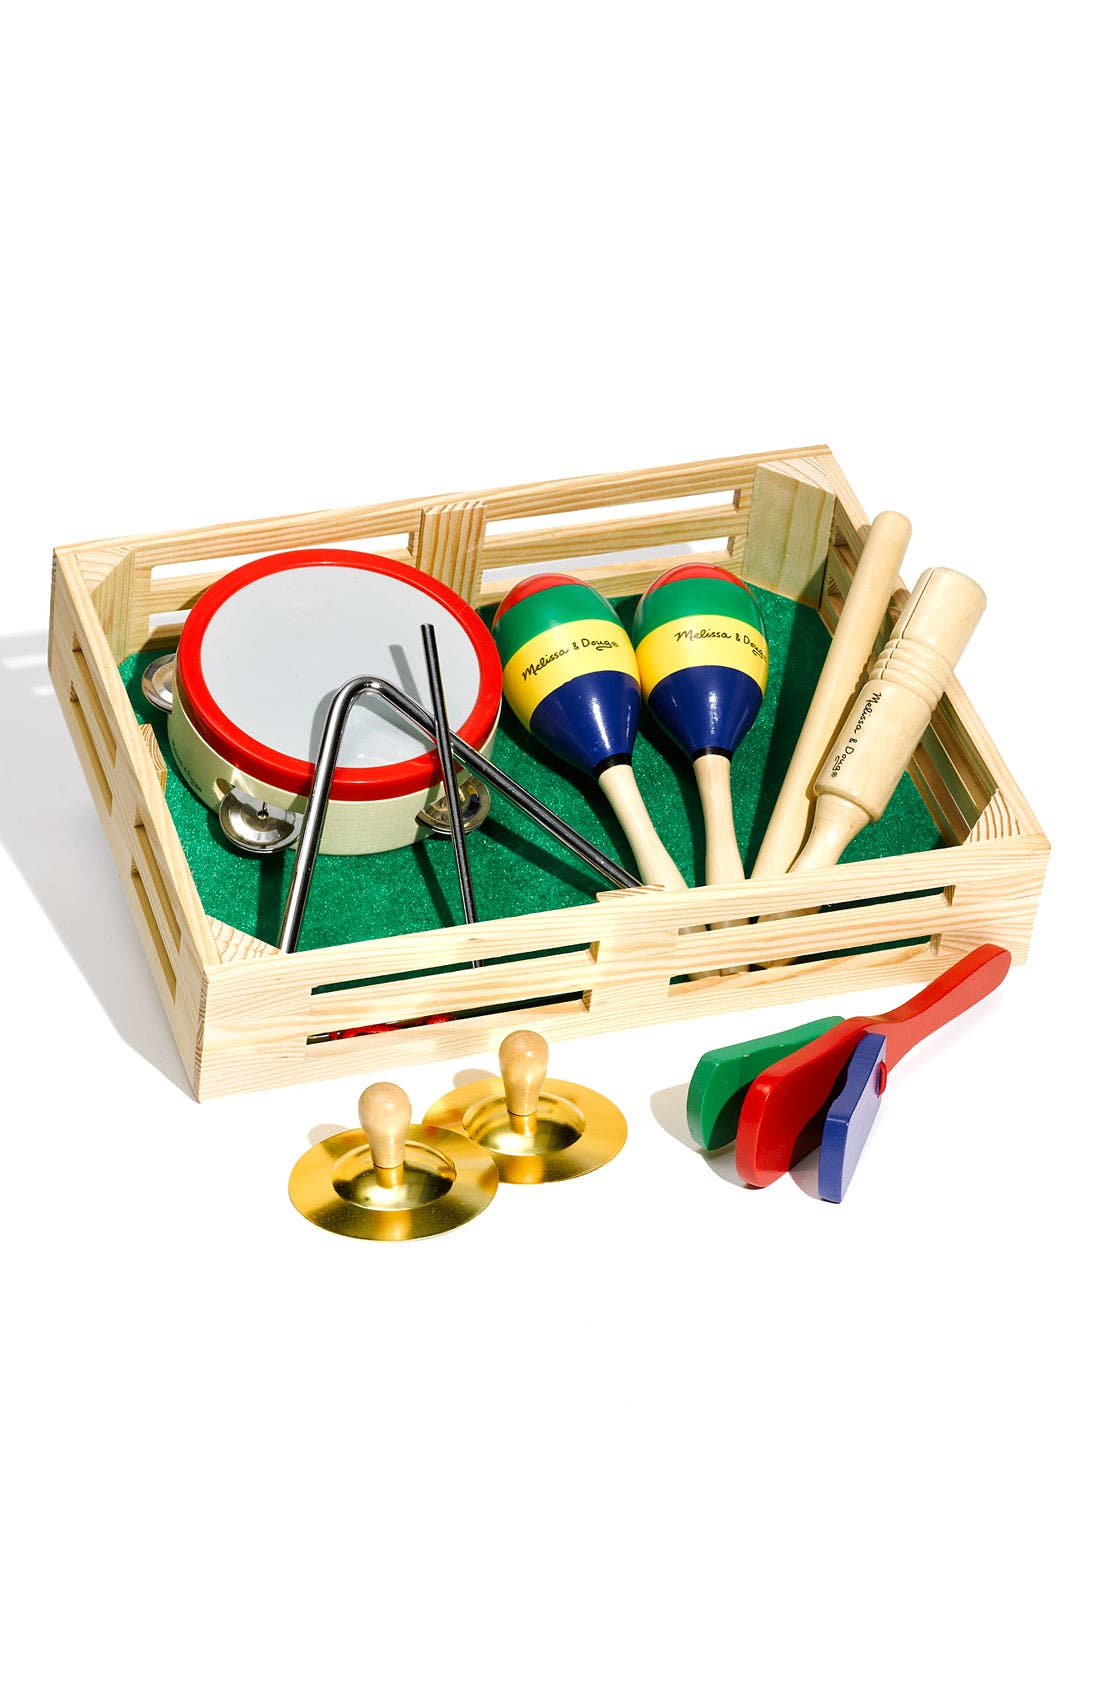 Alternate Image 1 Selected - Melissa & Doug 'Band in a Box' Set